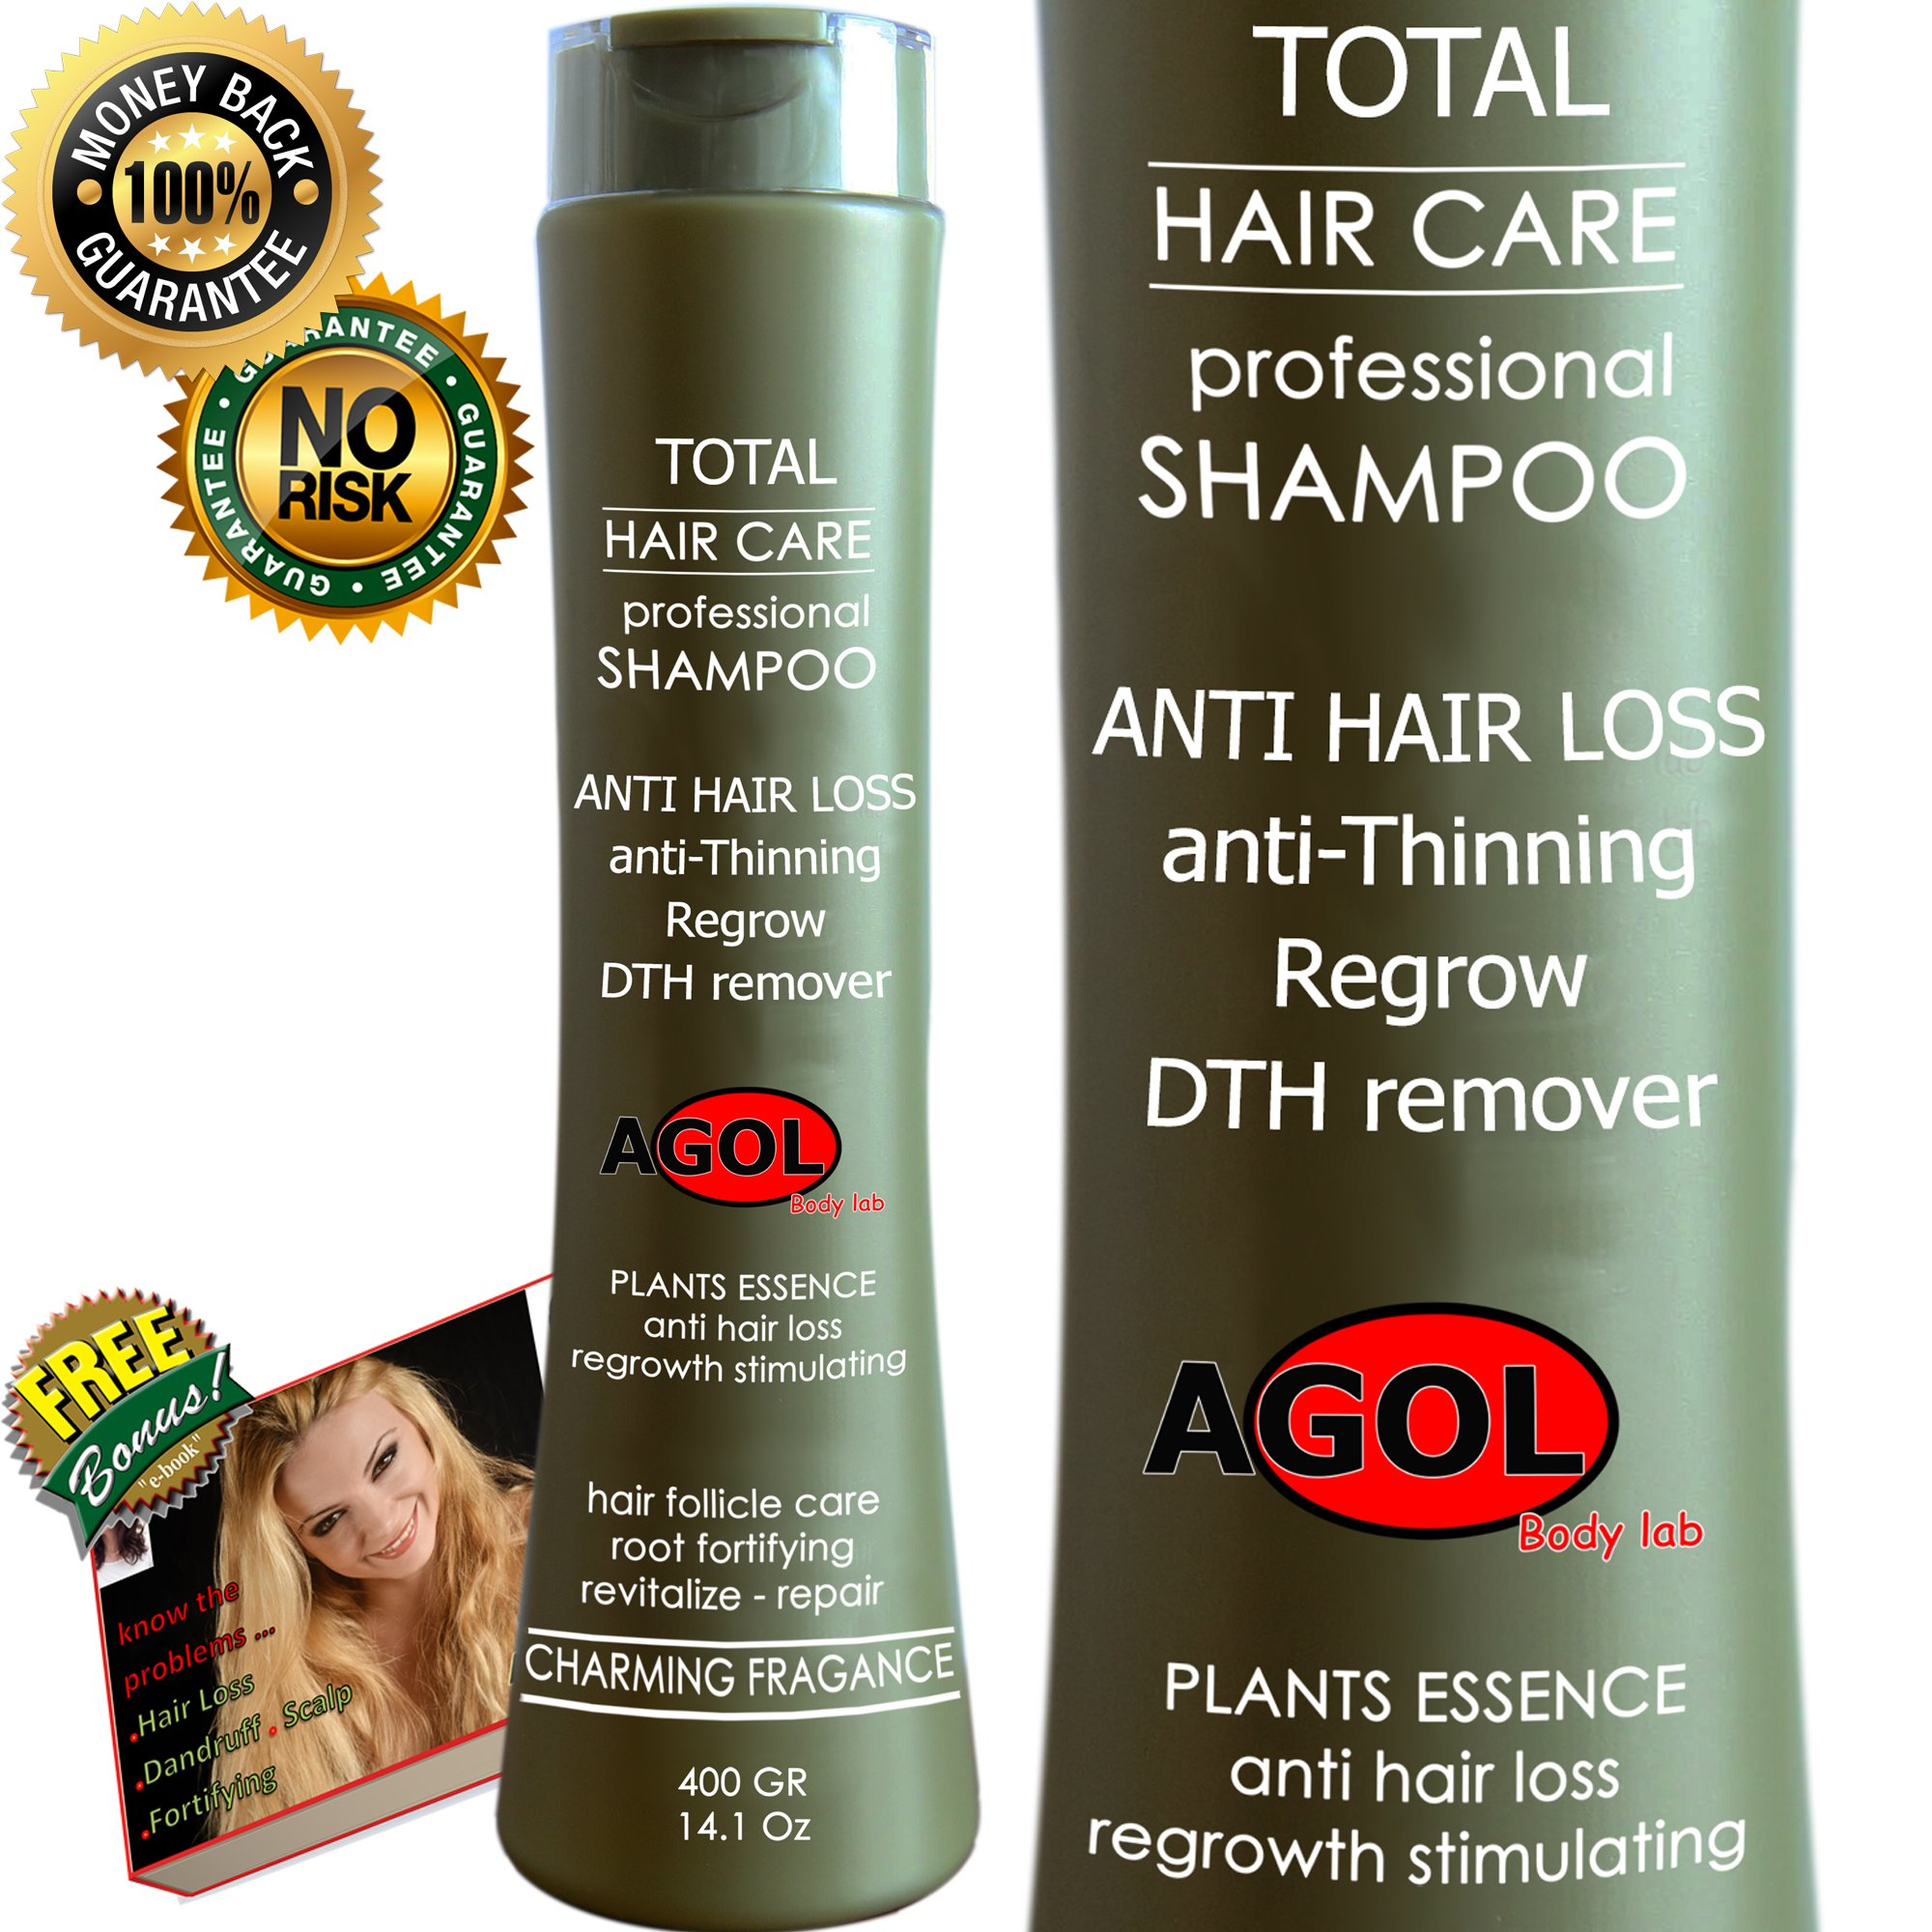 Total Care Organic Plants Extracts and Seaweed Shampoo Help Yourself Hair Grow Stimulating Balanced Ph - Root Purification Thinning & Loss Hair Daily Use Decrease Dandruff & Scalp. Woman & Men 14.1Oz by AGOL